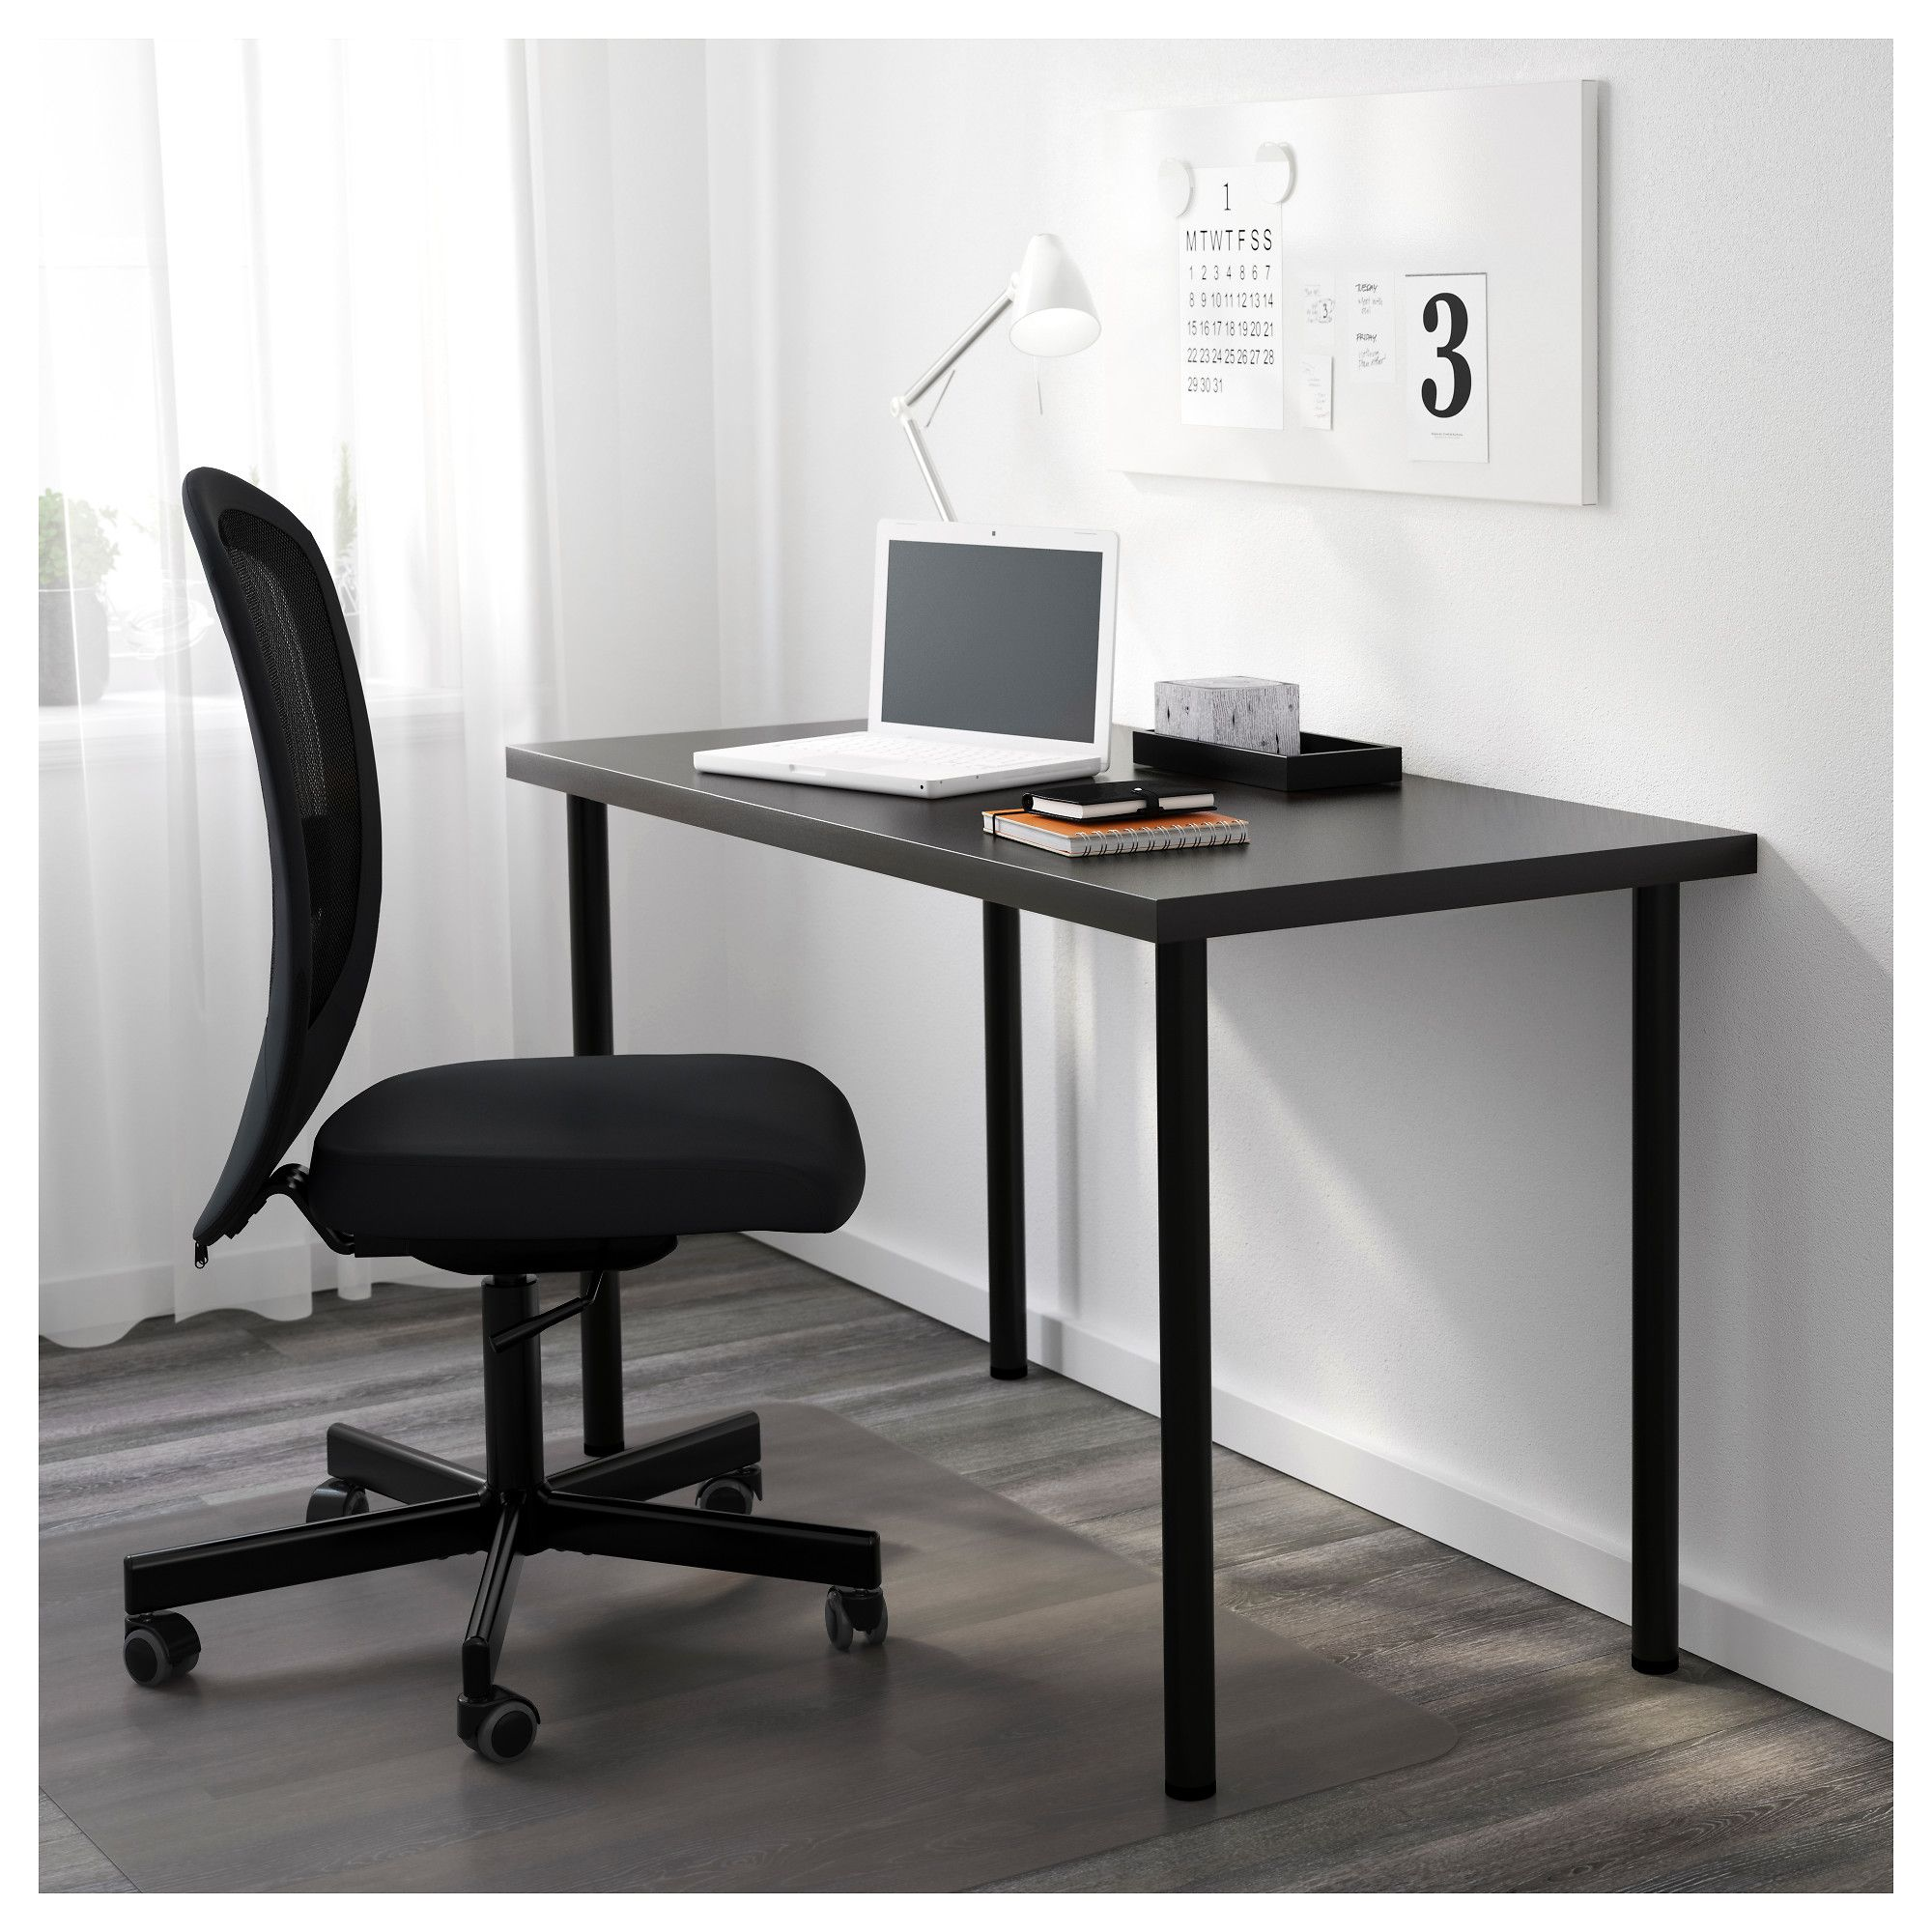 LINNMON ADILS Table black brown